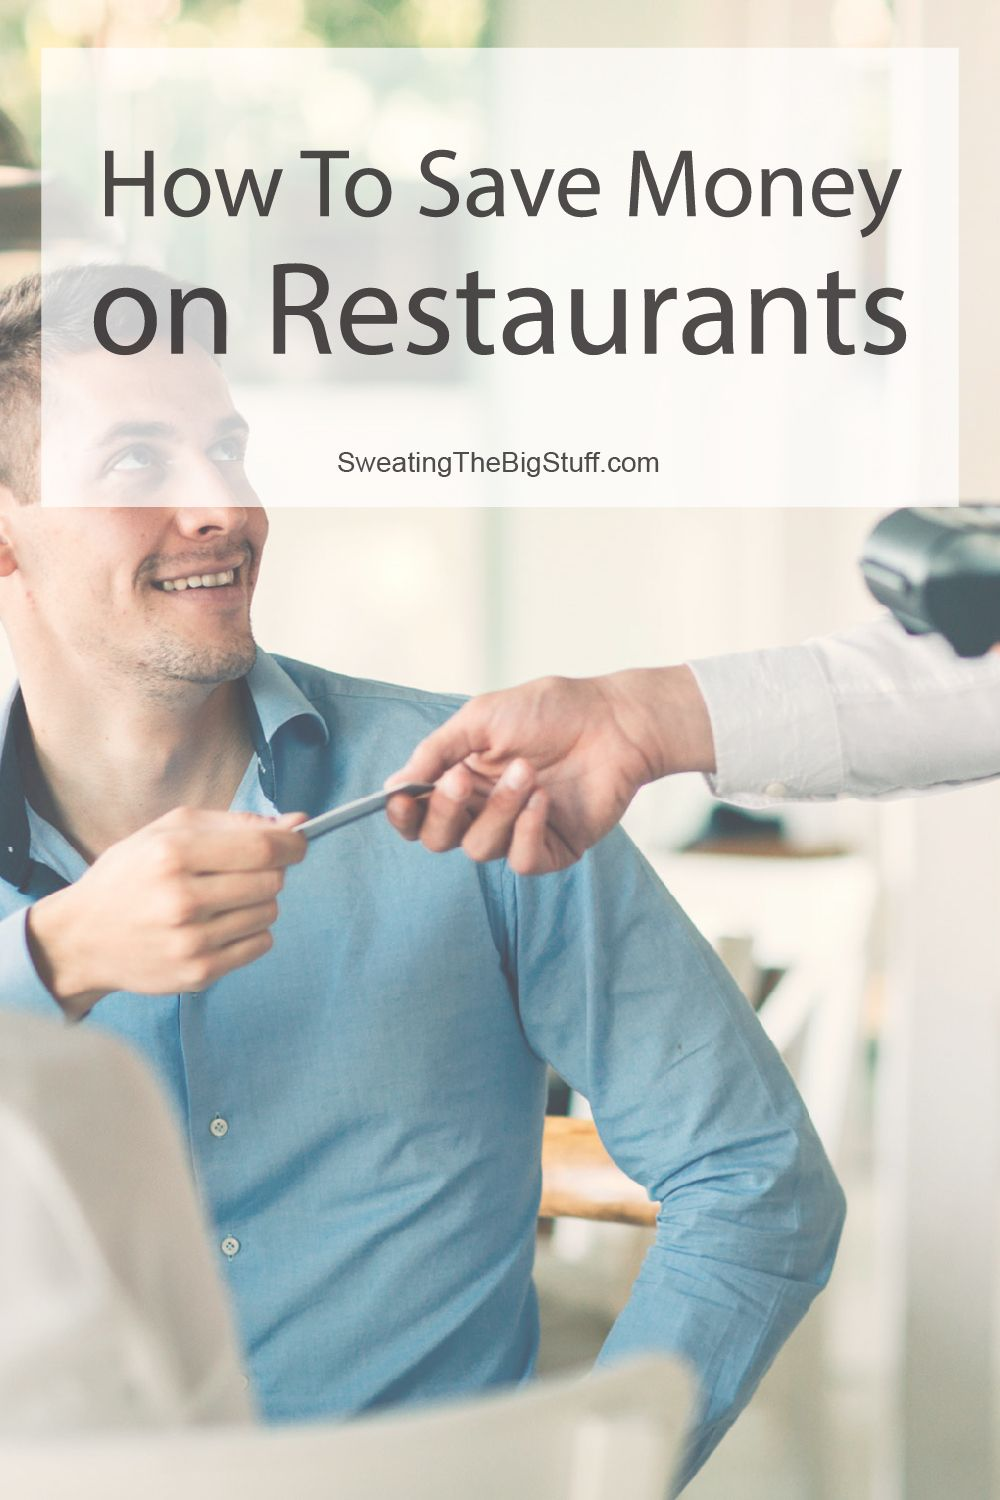 How to Save Money On Restaurants